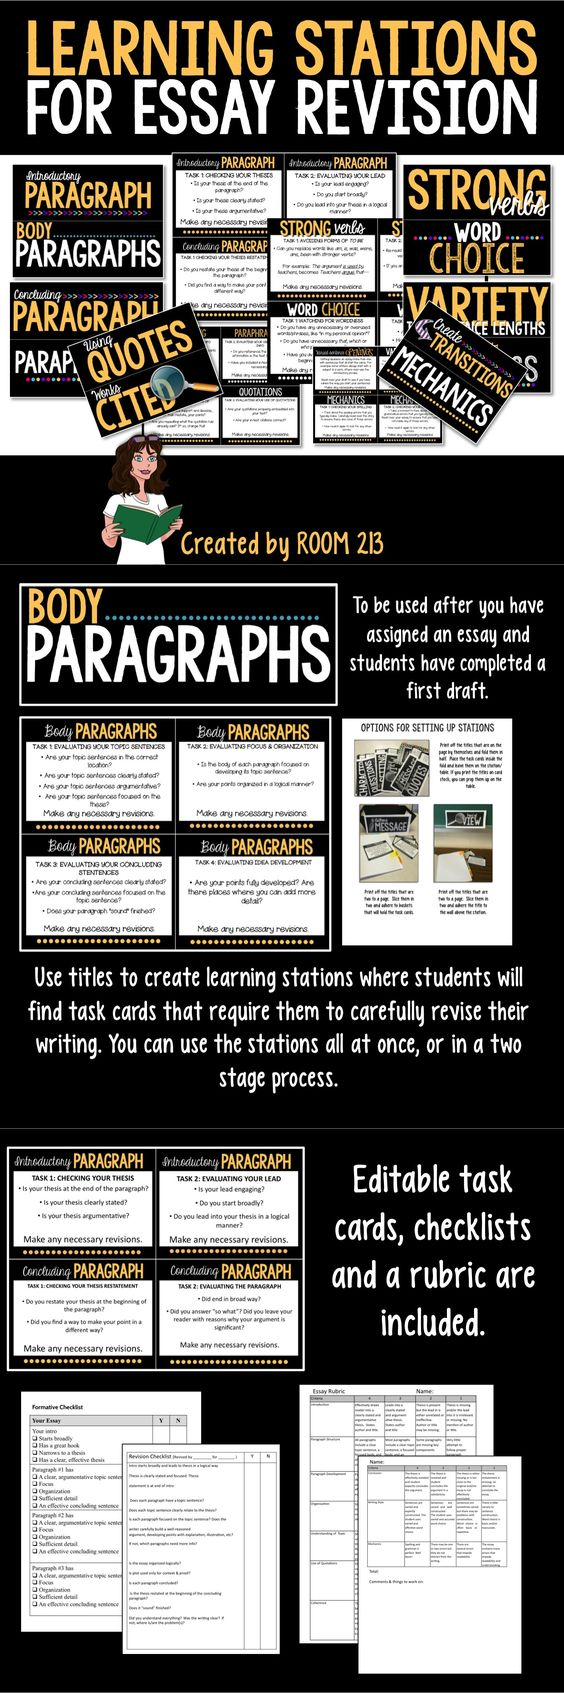 essay revision learning stations gcse english middle and essay writing the revision process is a key component of good writing teach your high school or middle school english students about the importance of